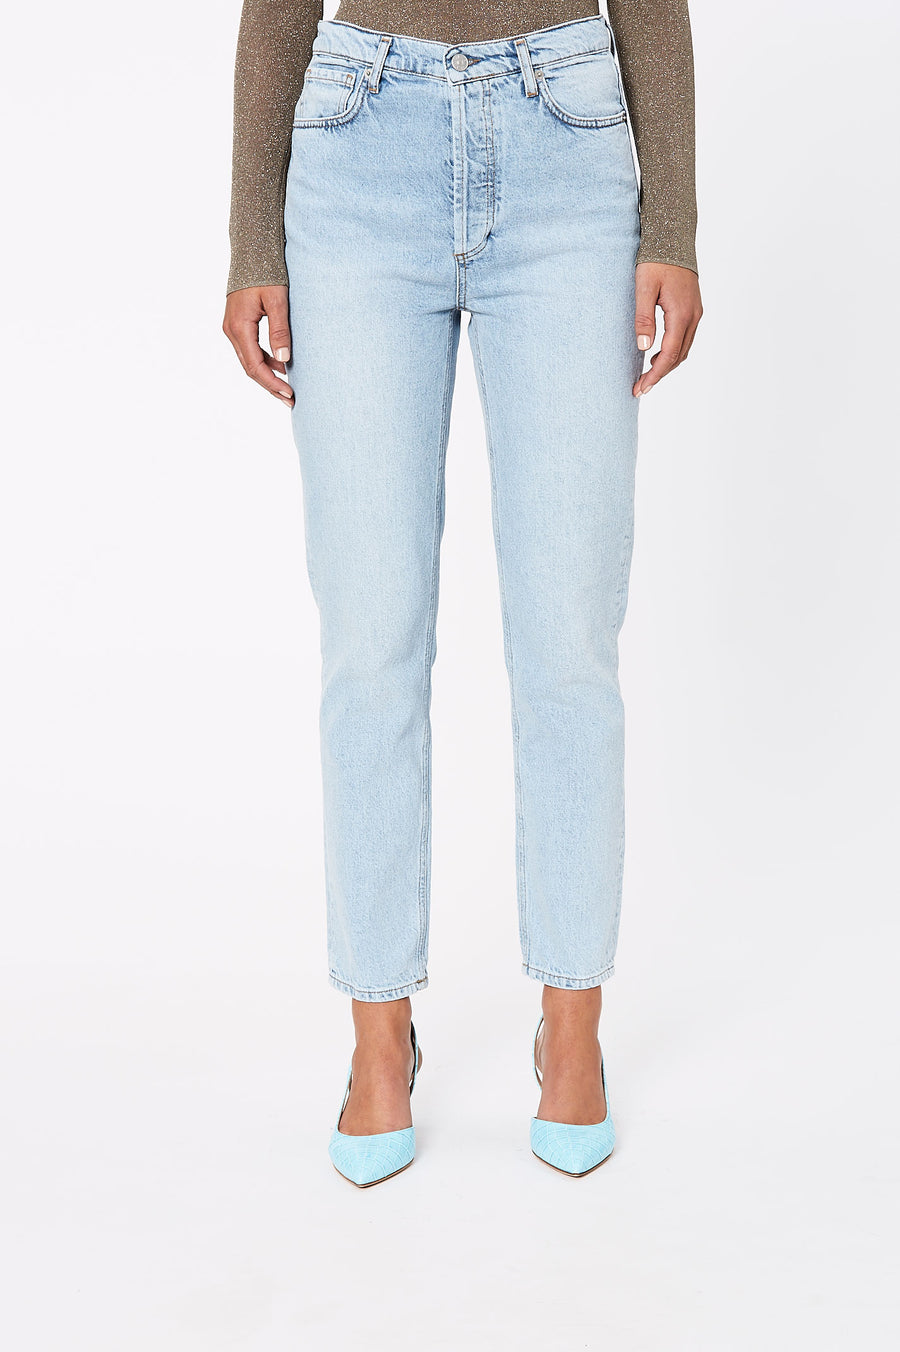 Waist accentuating high-rise jeans, with a light indigo wash, perfect for any daytime outfit